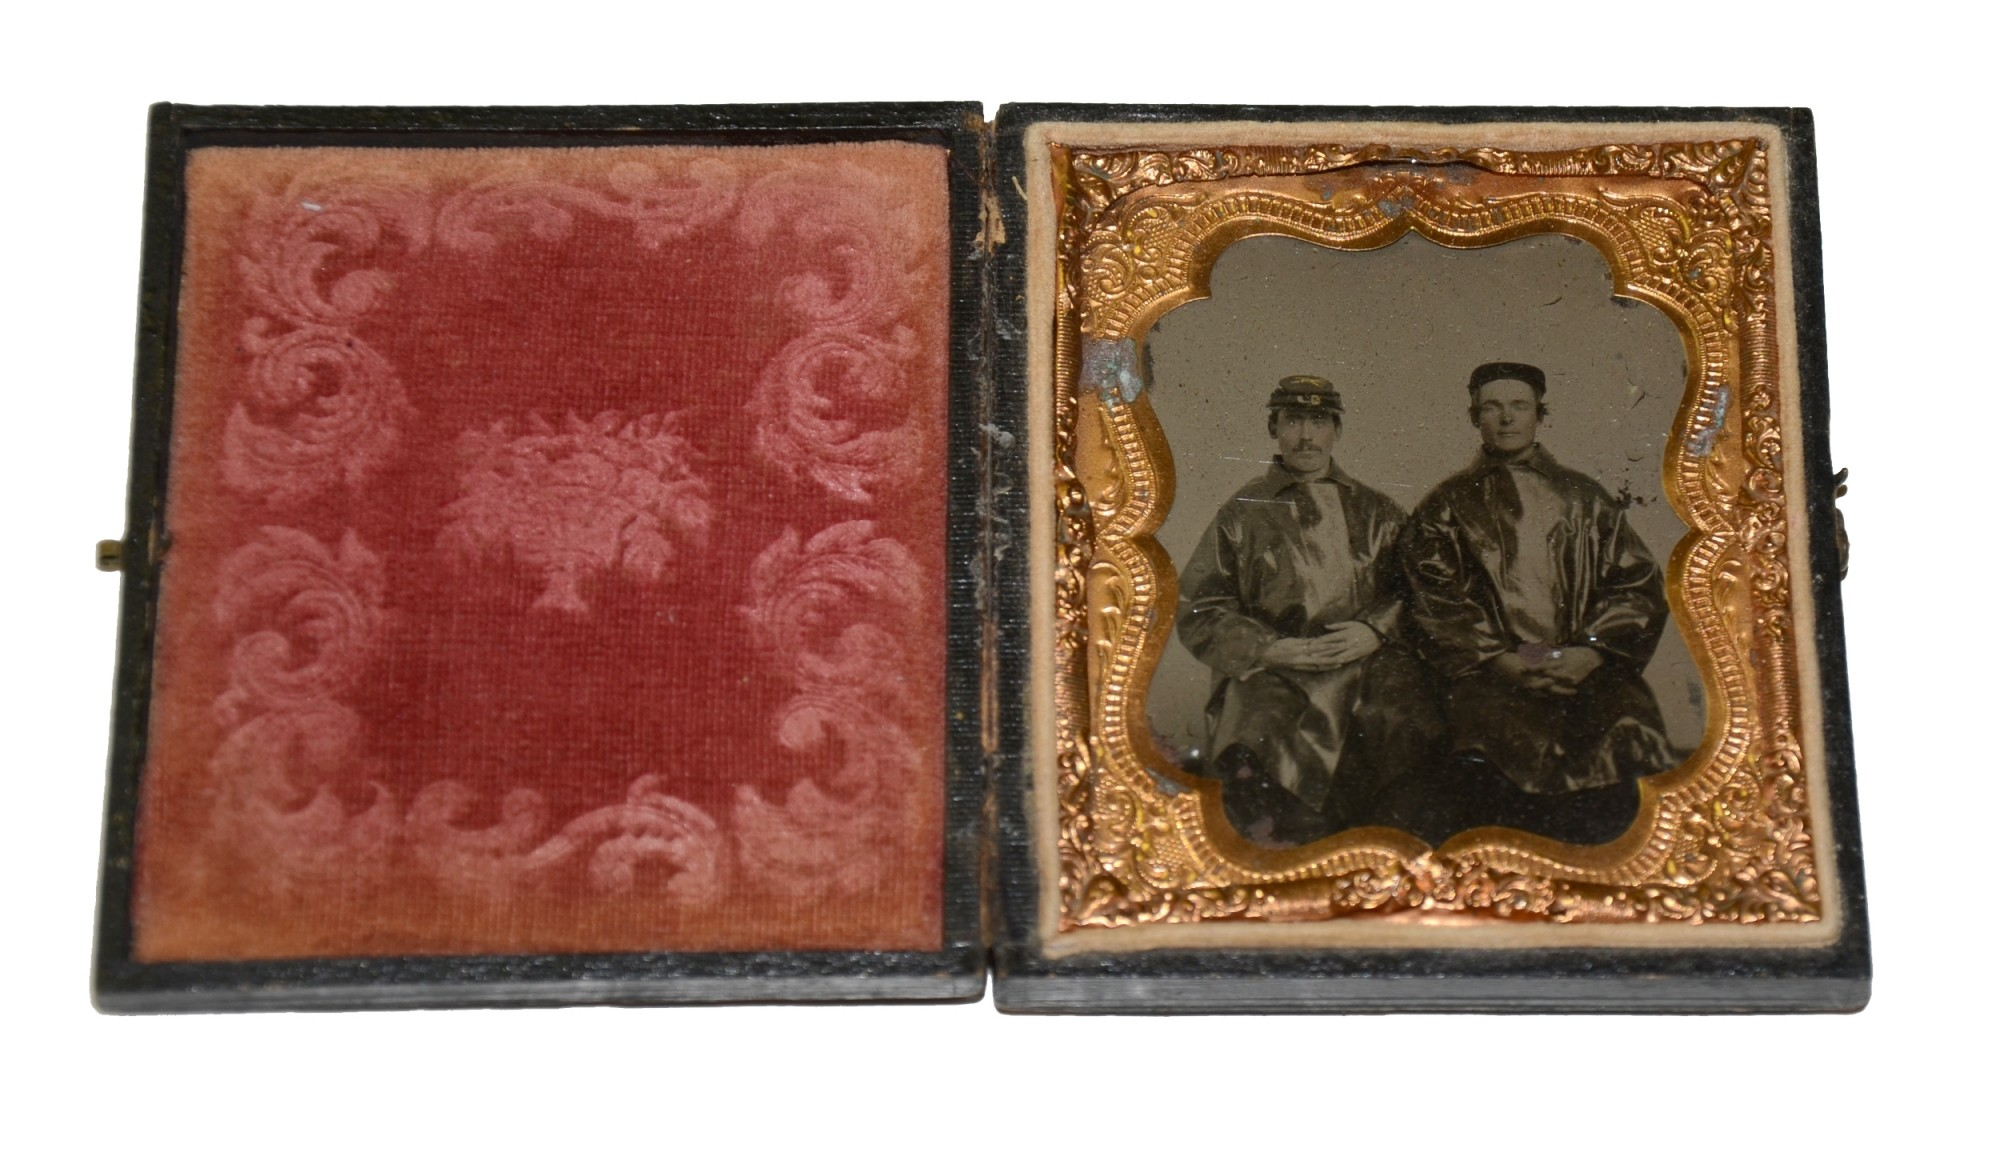 SIXTH-PLATE TINTYPE OF TWO UNION SOLDIERS IN RAIN COATS